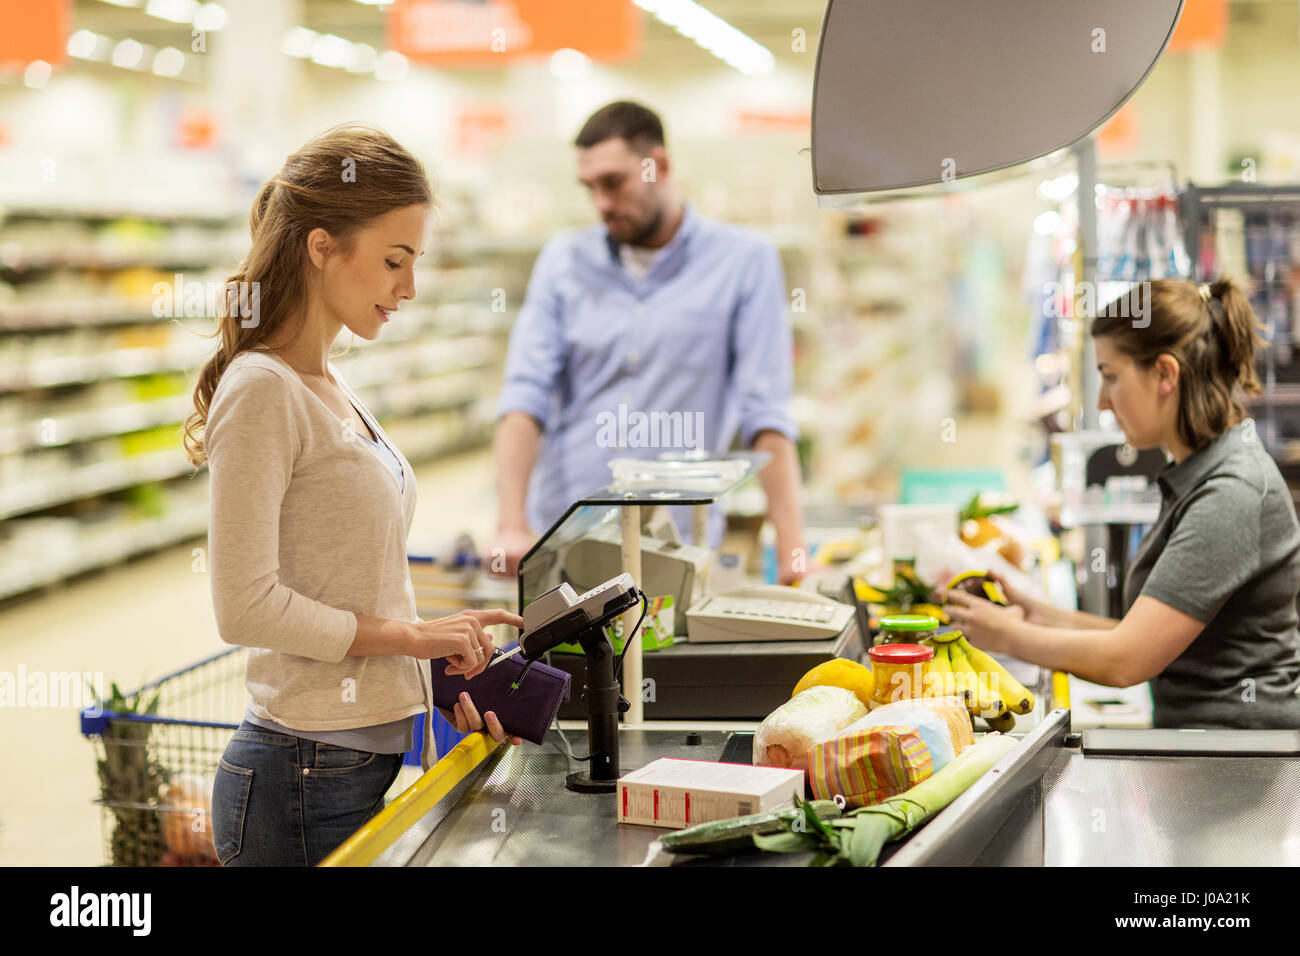 Buy Cash Register Woman Buying Food At Grocery Store Cash Register Stock